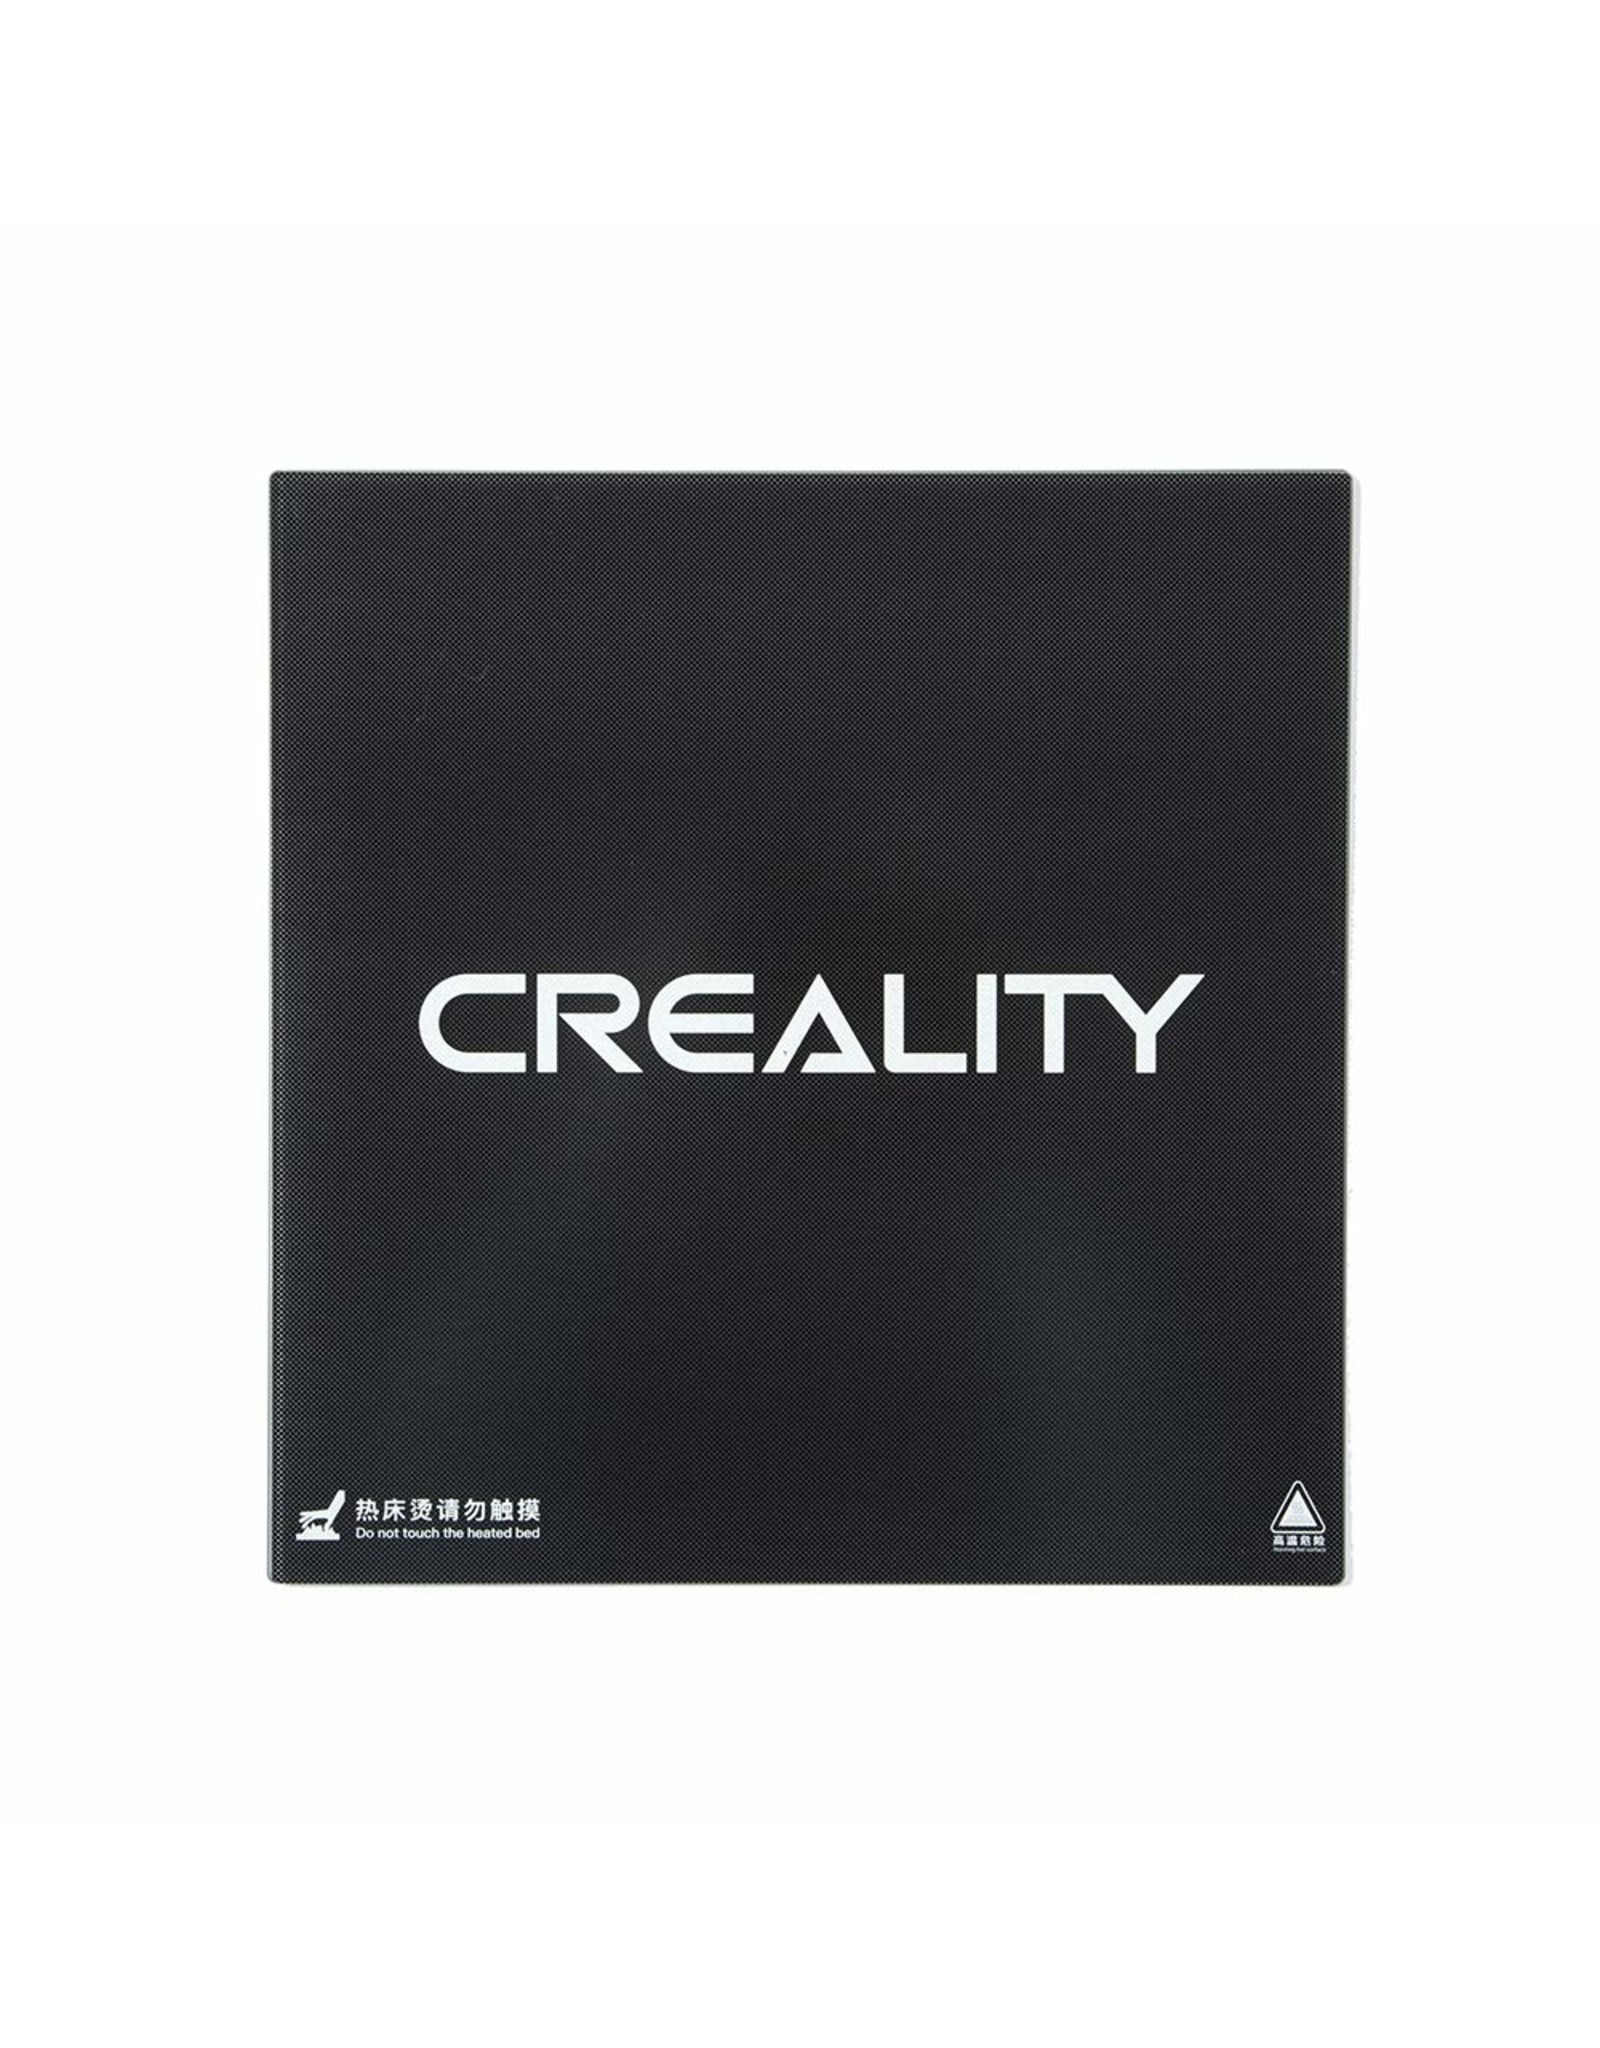 Creality 3D Carbon Glass Plate 235 x 235 mm